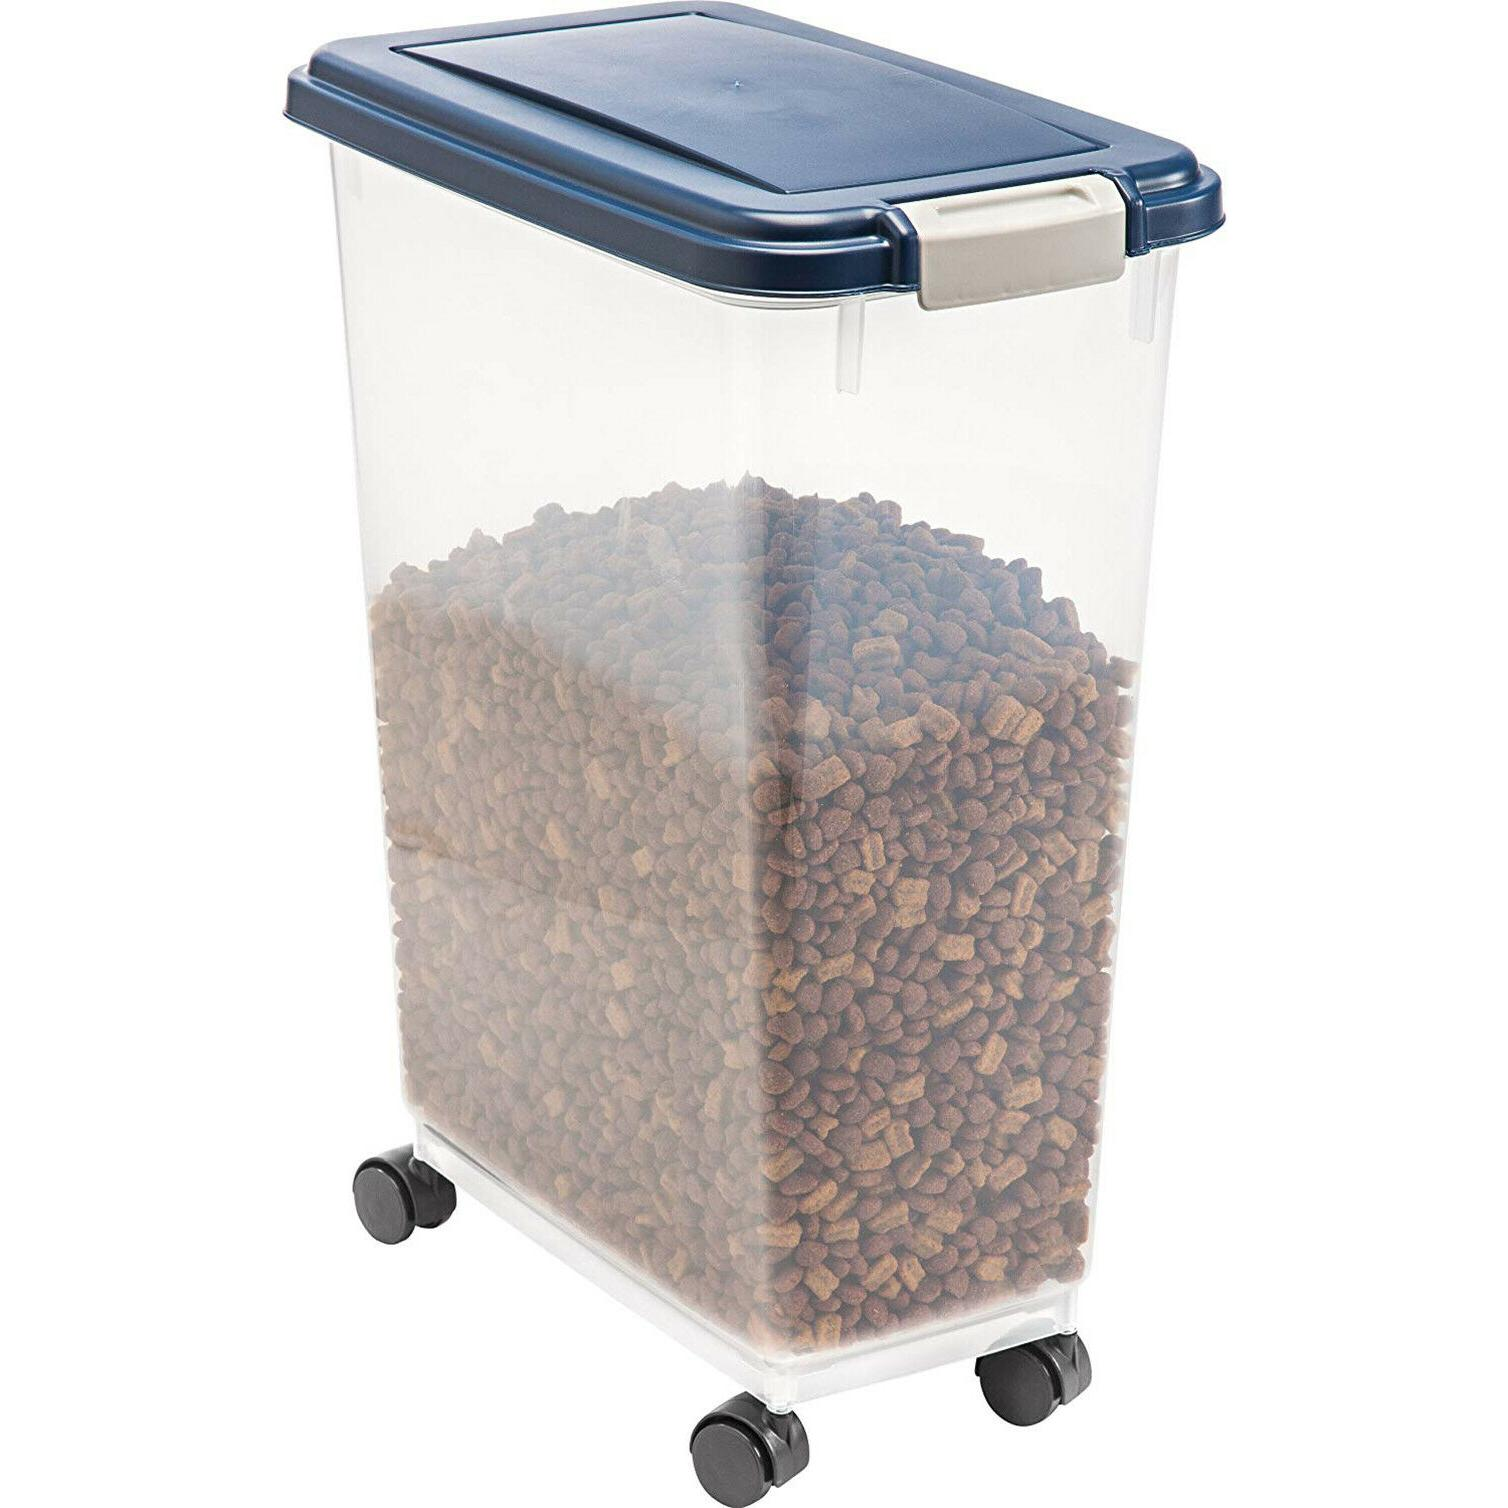 AIRTIGHT PET FOOD CONTAINER Iris Dog Cat Rolling Bin Plastic POUNDS